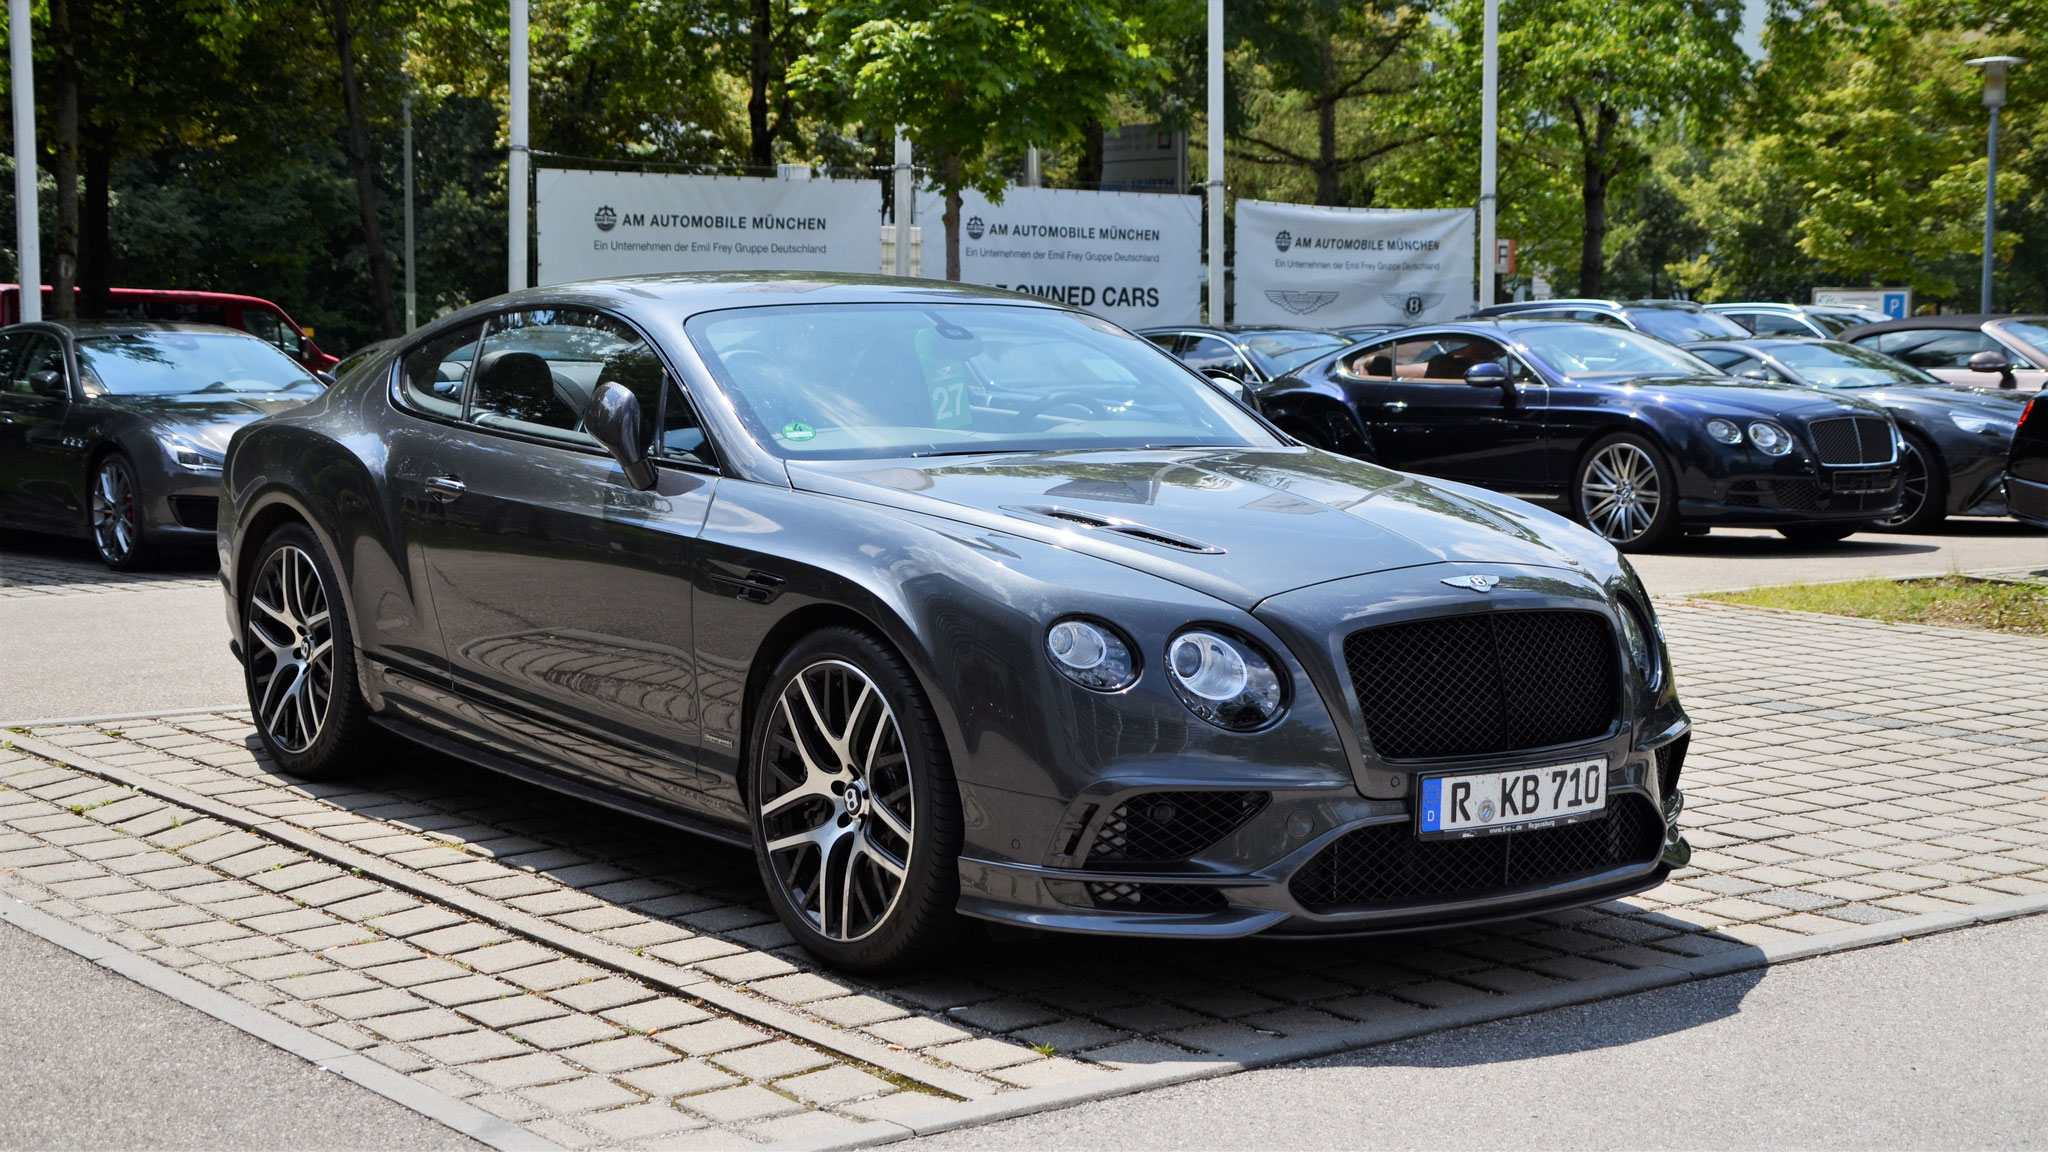 Bentley Continental GT Supersports - R-KB-710